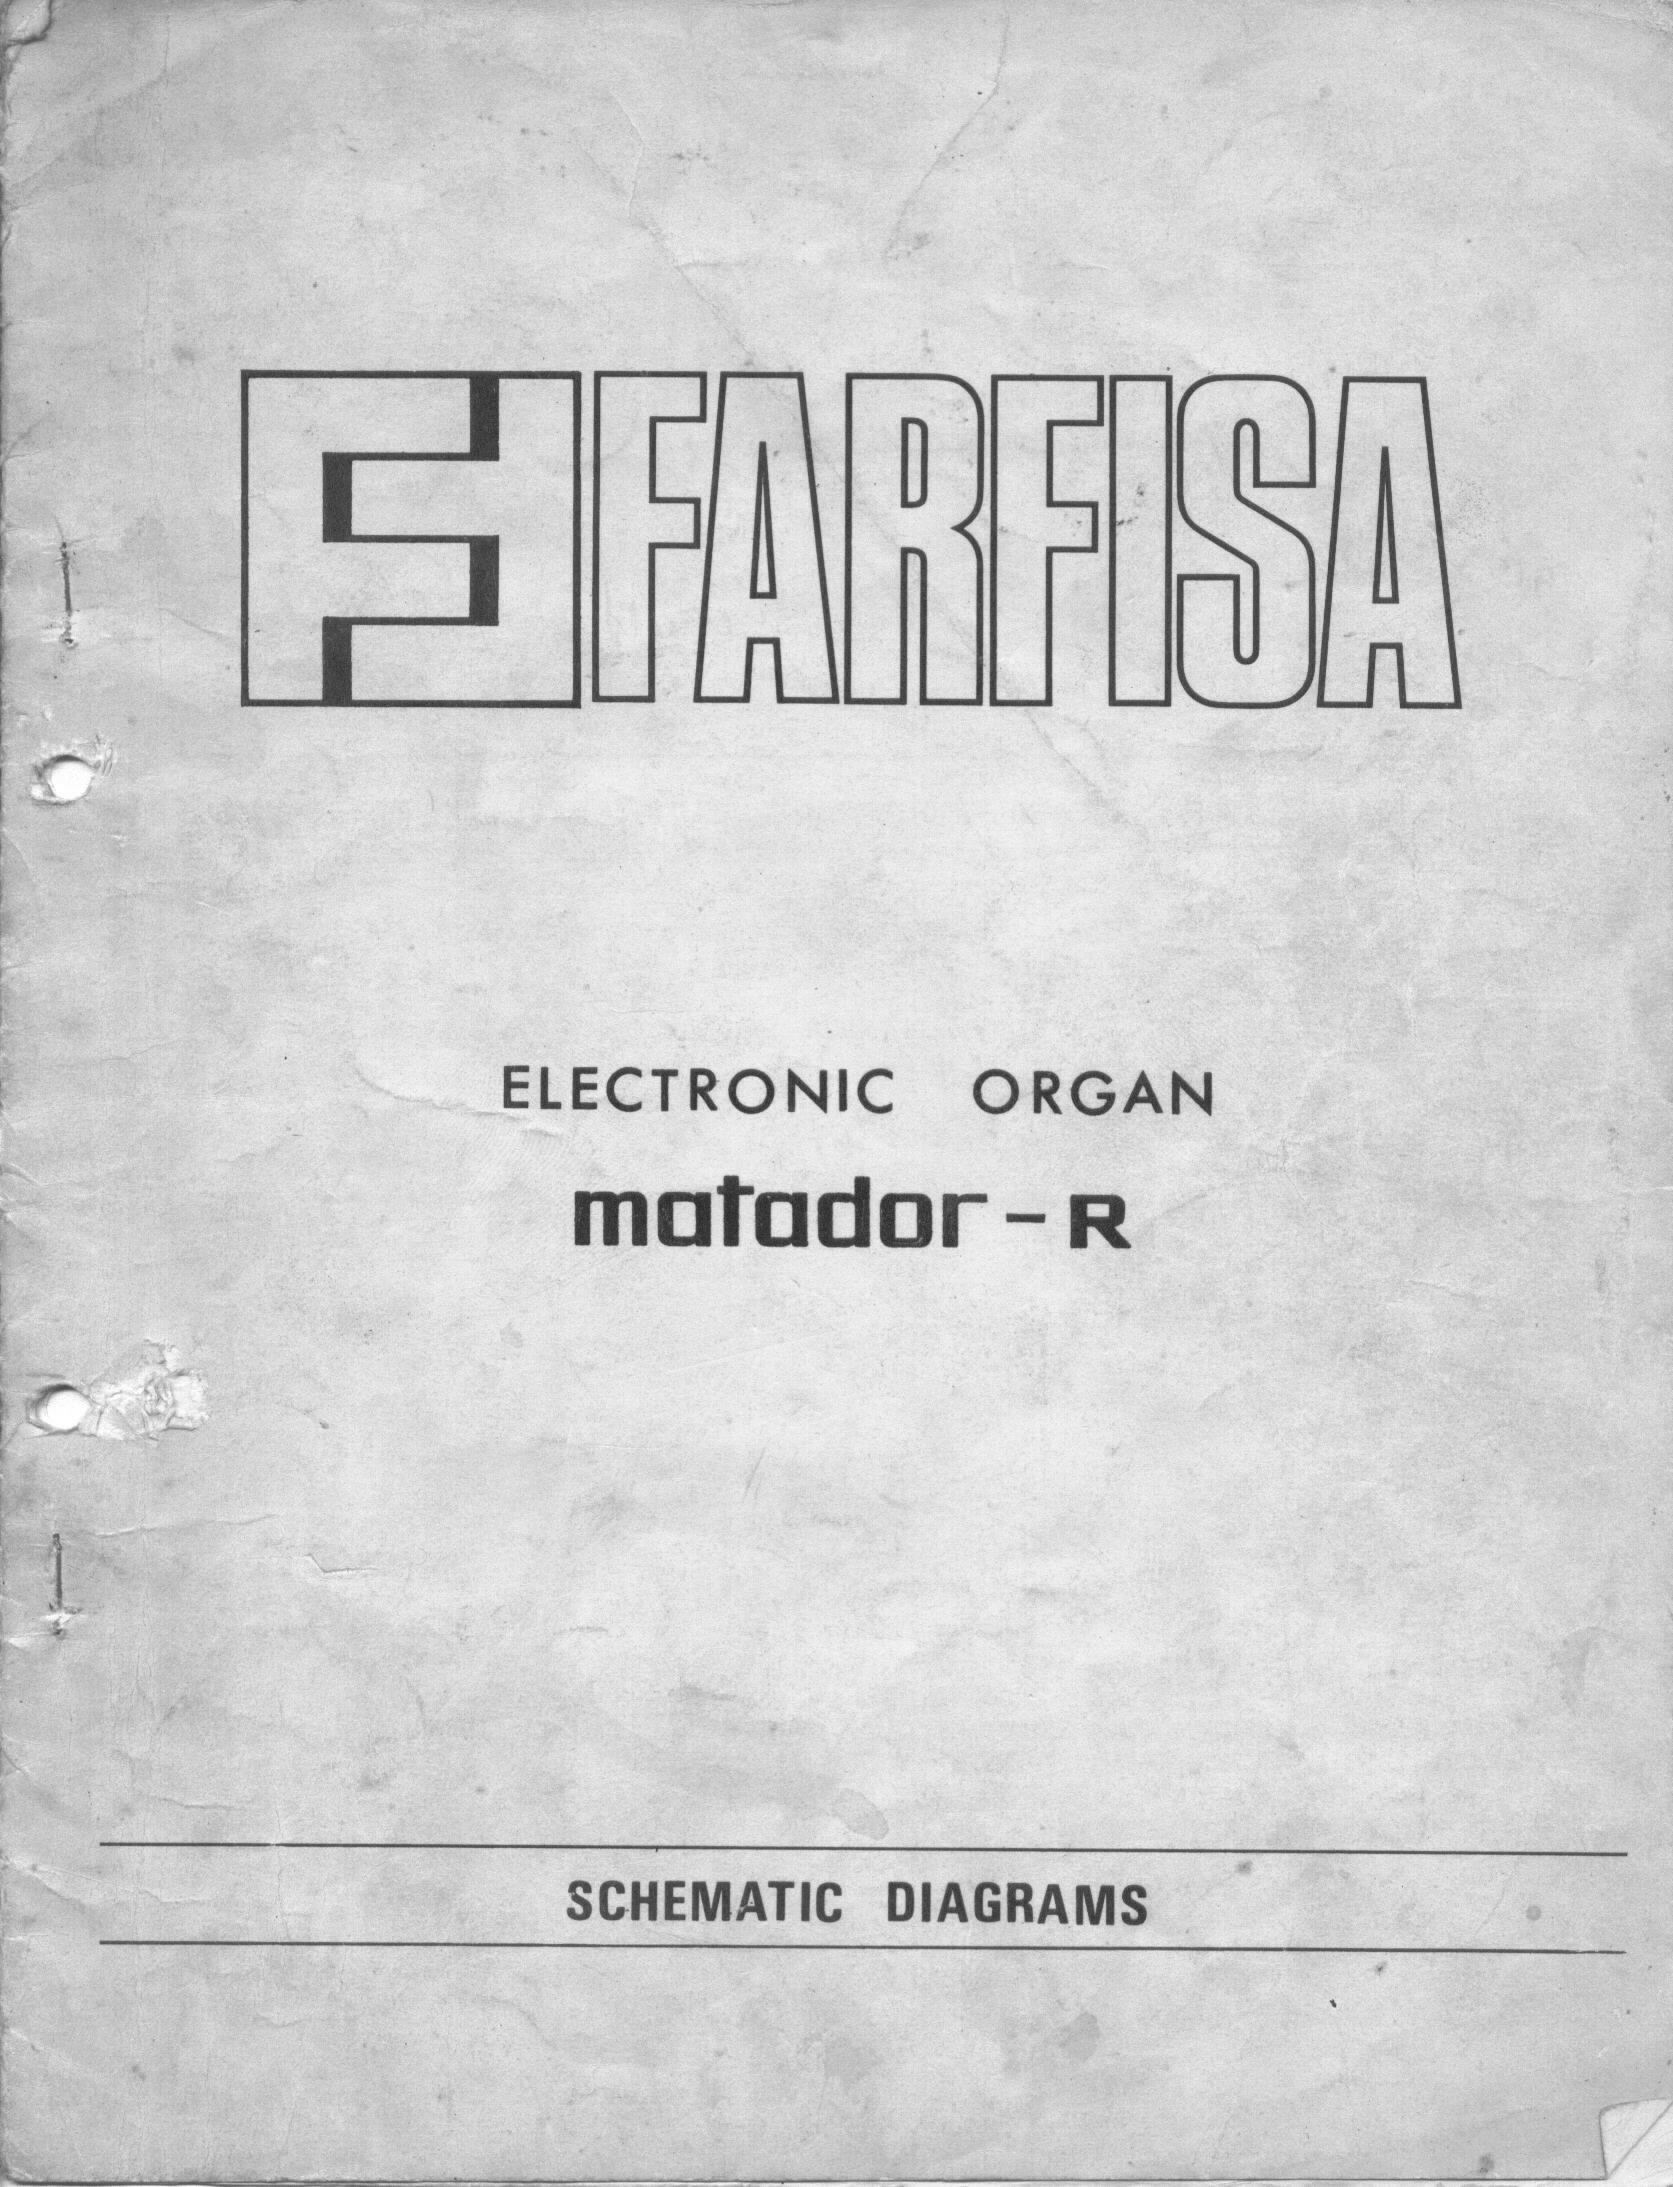 Farfisa Matador R Electronic Organ Schematic Diagrams Click On The To Open A Larger Version In New Window Or If You Need Save Them Look At Of Page Just Right Image And Target As